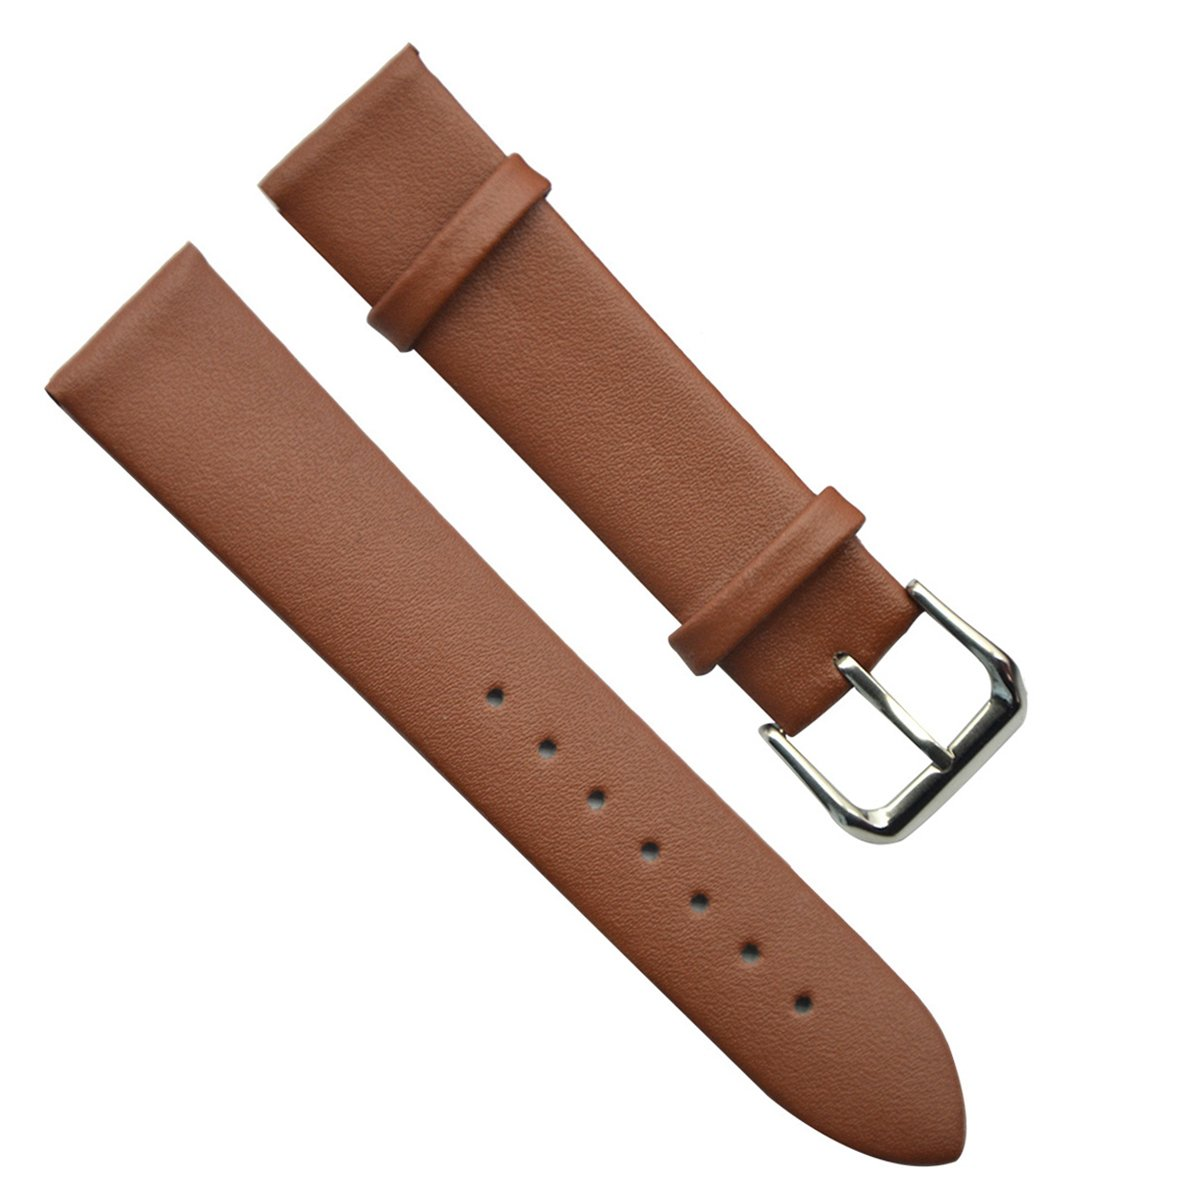 20mm Men's Vintage Regular Replacement Genuine Leather Silver Buckle Watch Strap/Watch Band 18mm 20mm 22mm 24mm vintage leather fashion watch band watch men strap man watches straps black brown blue